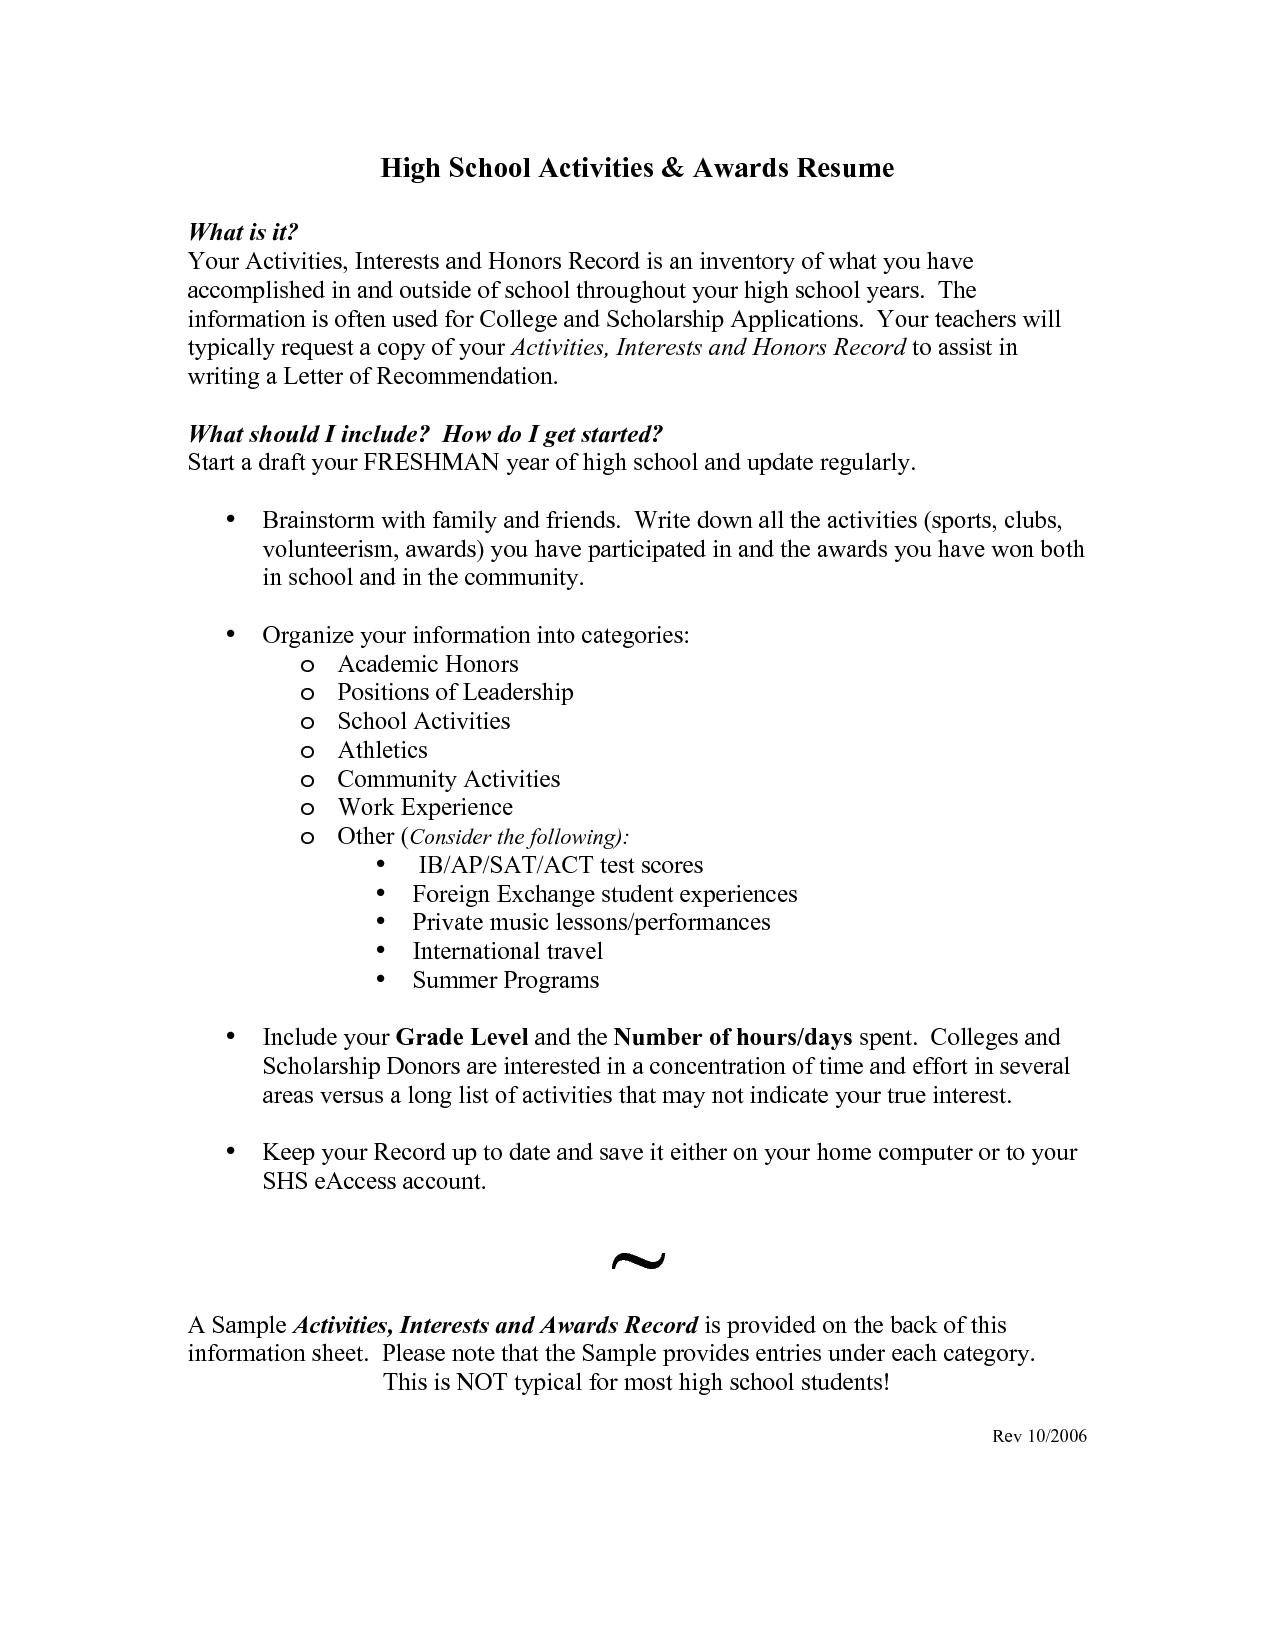 example resume for high school student for college applications. Resume Example. Resume CV Cover Letter